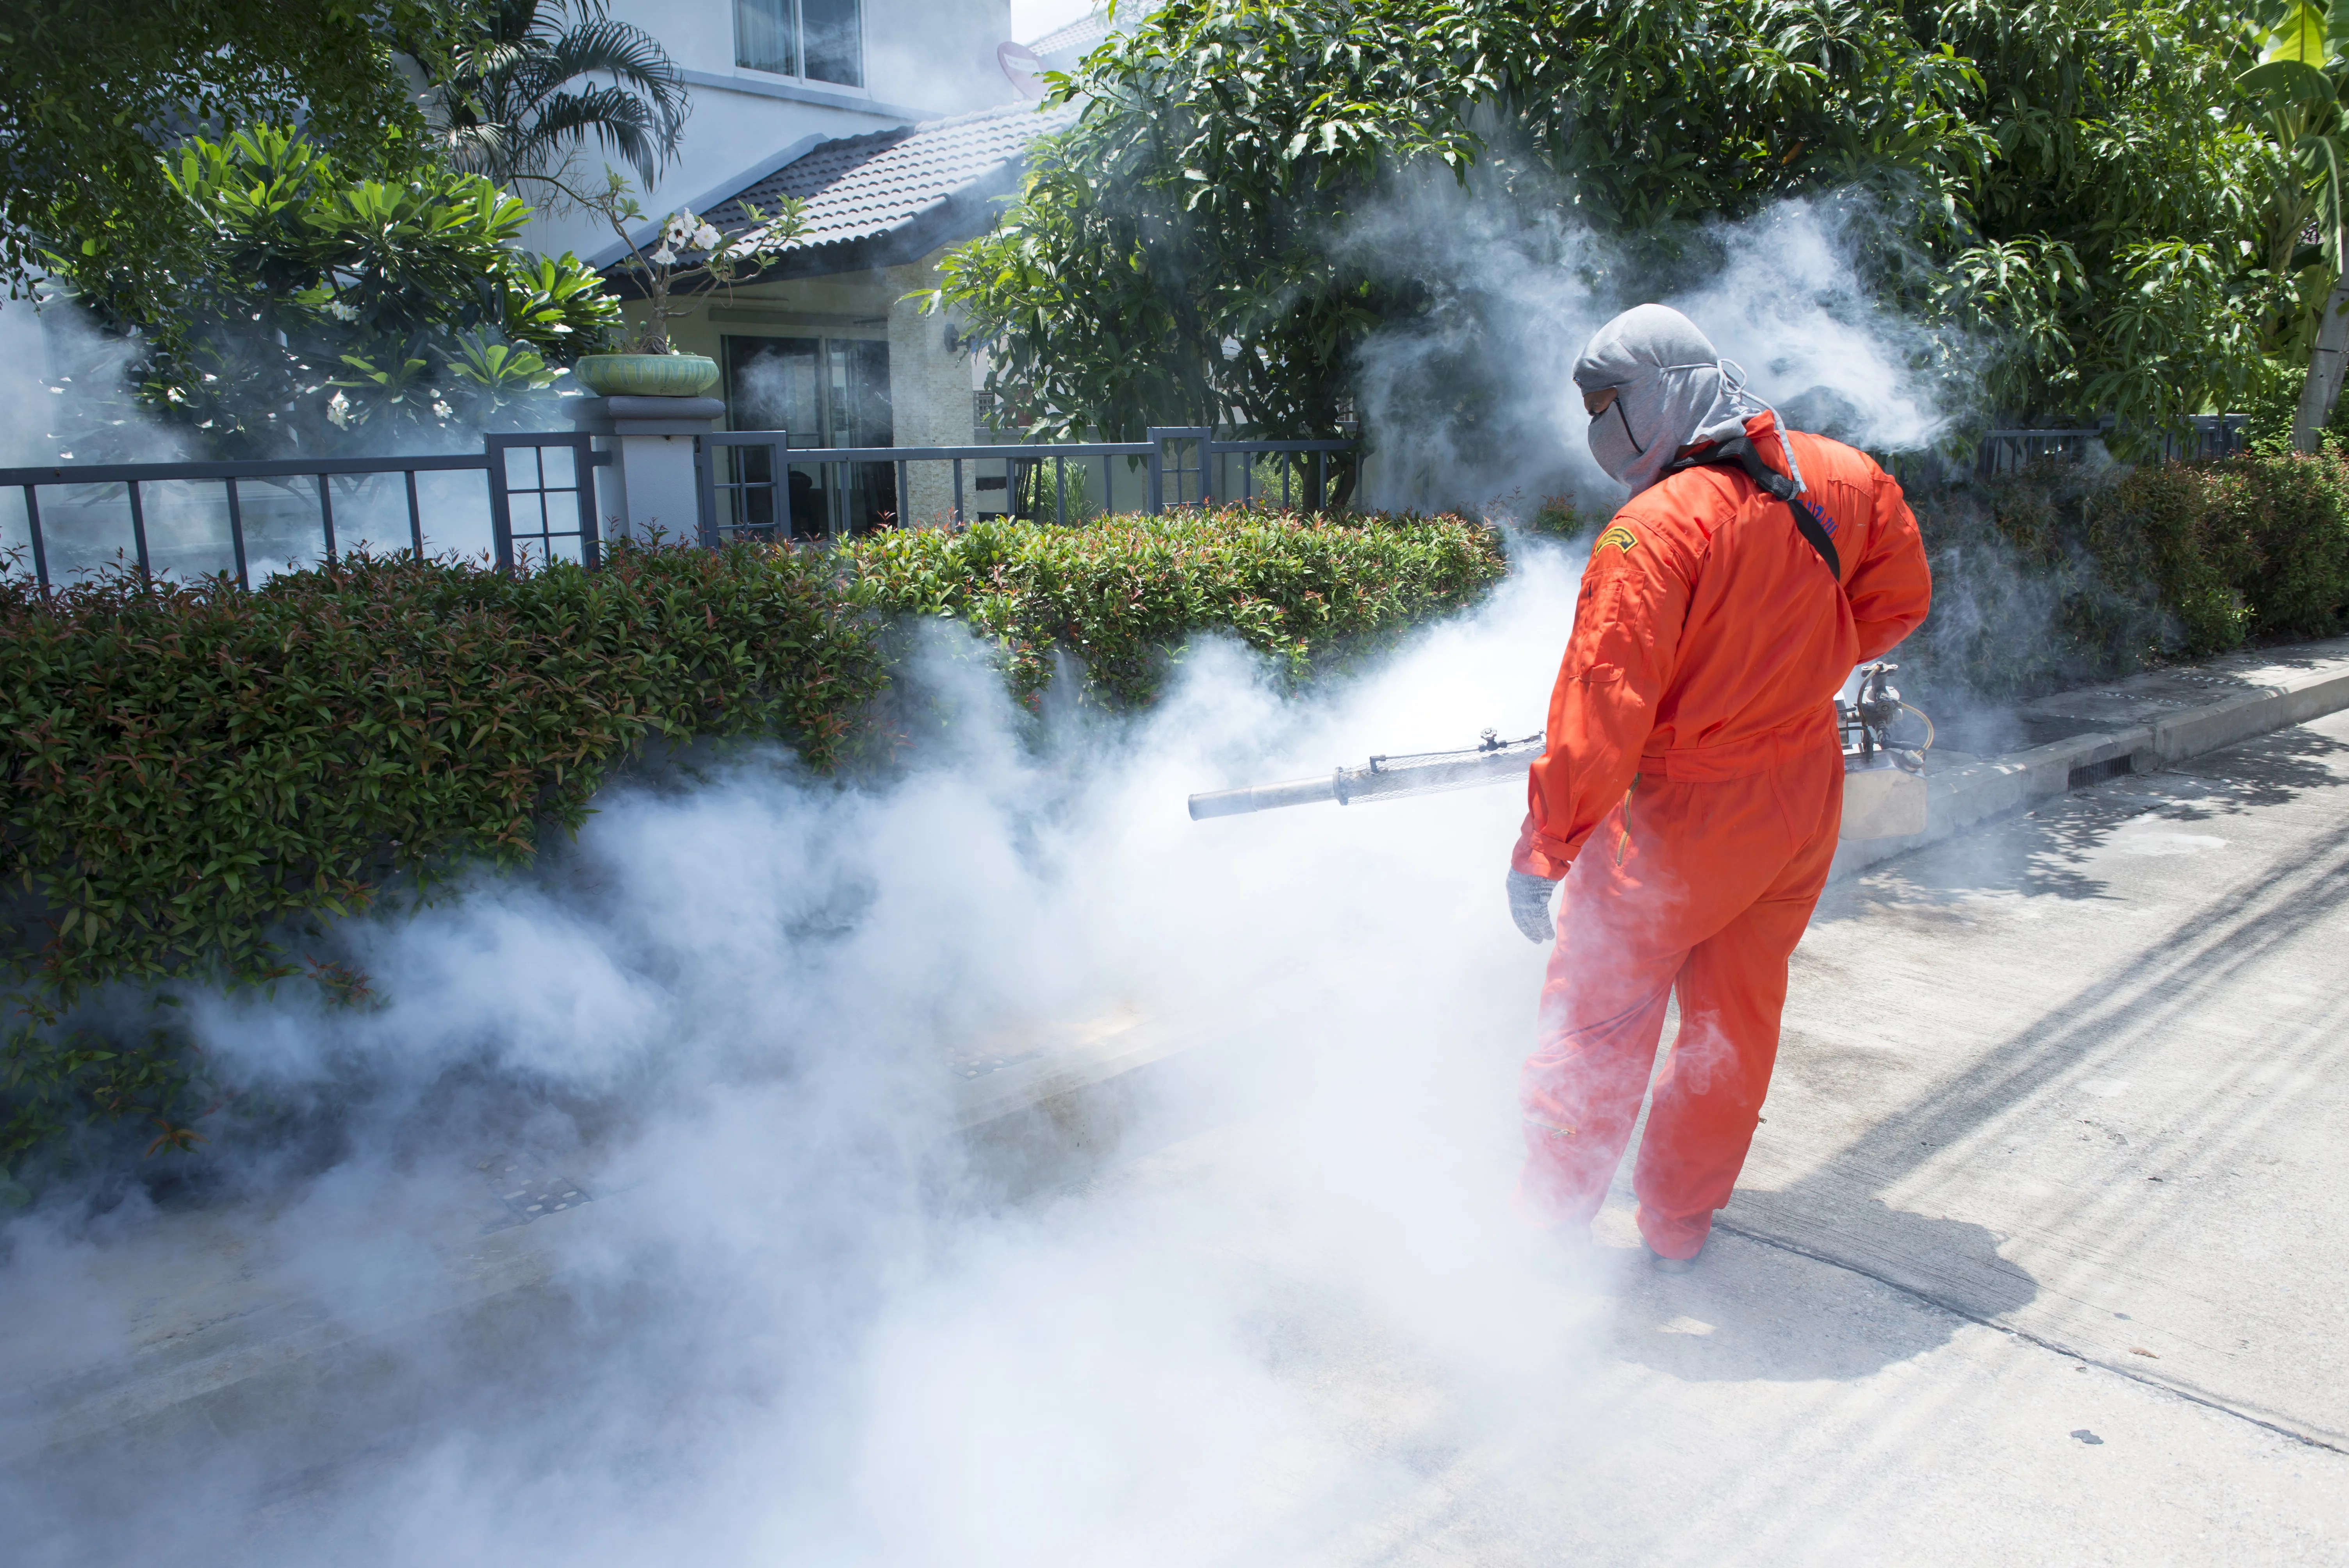 Workers are fogging for dengue control.